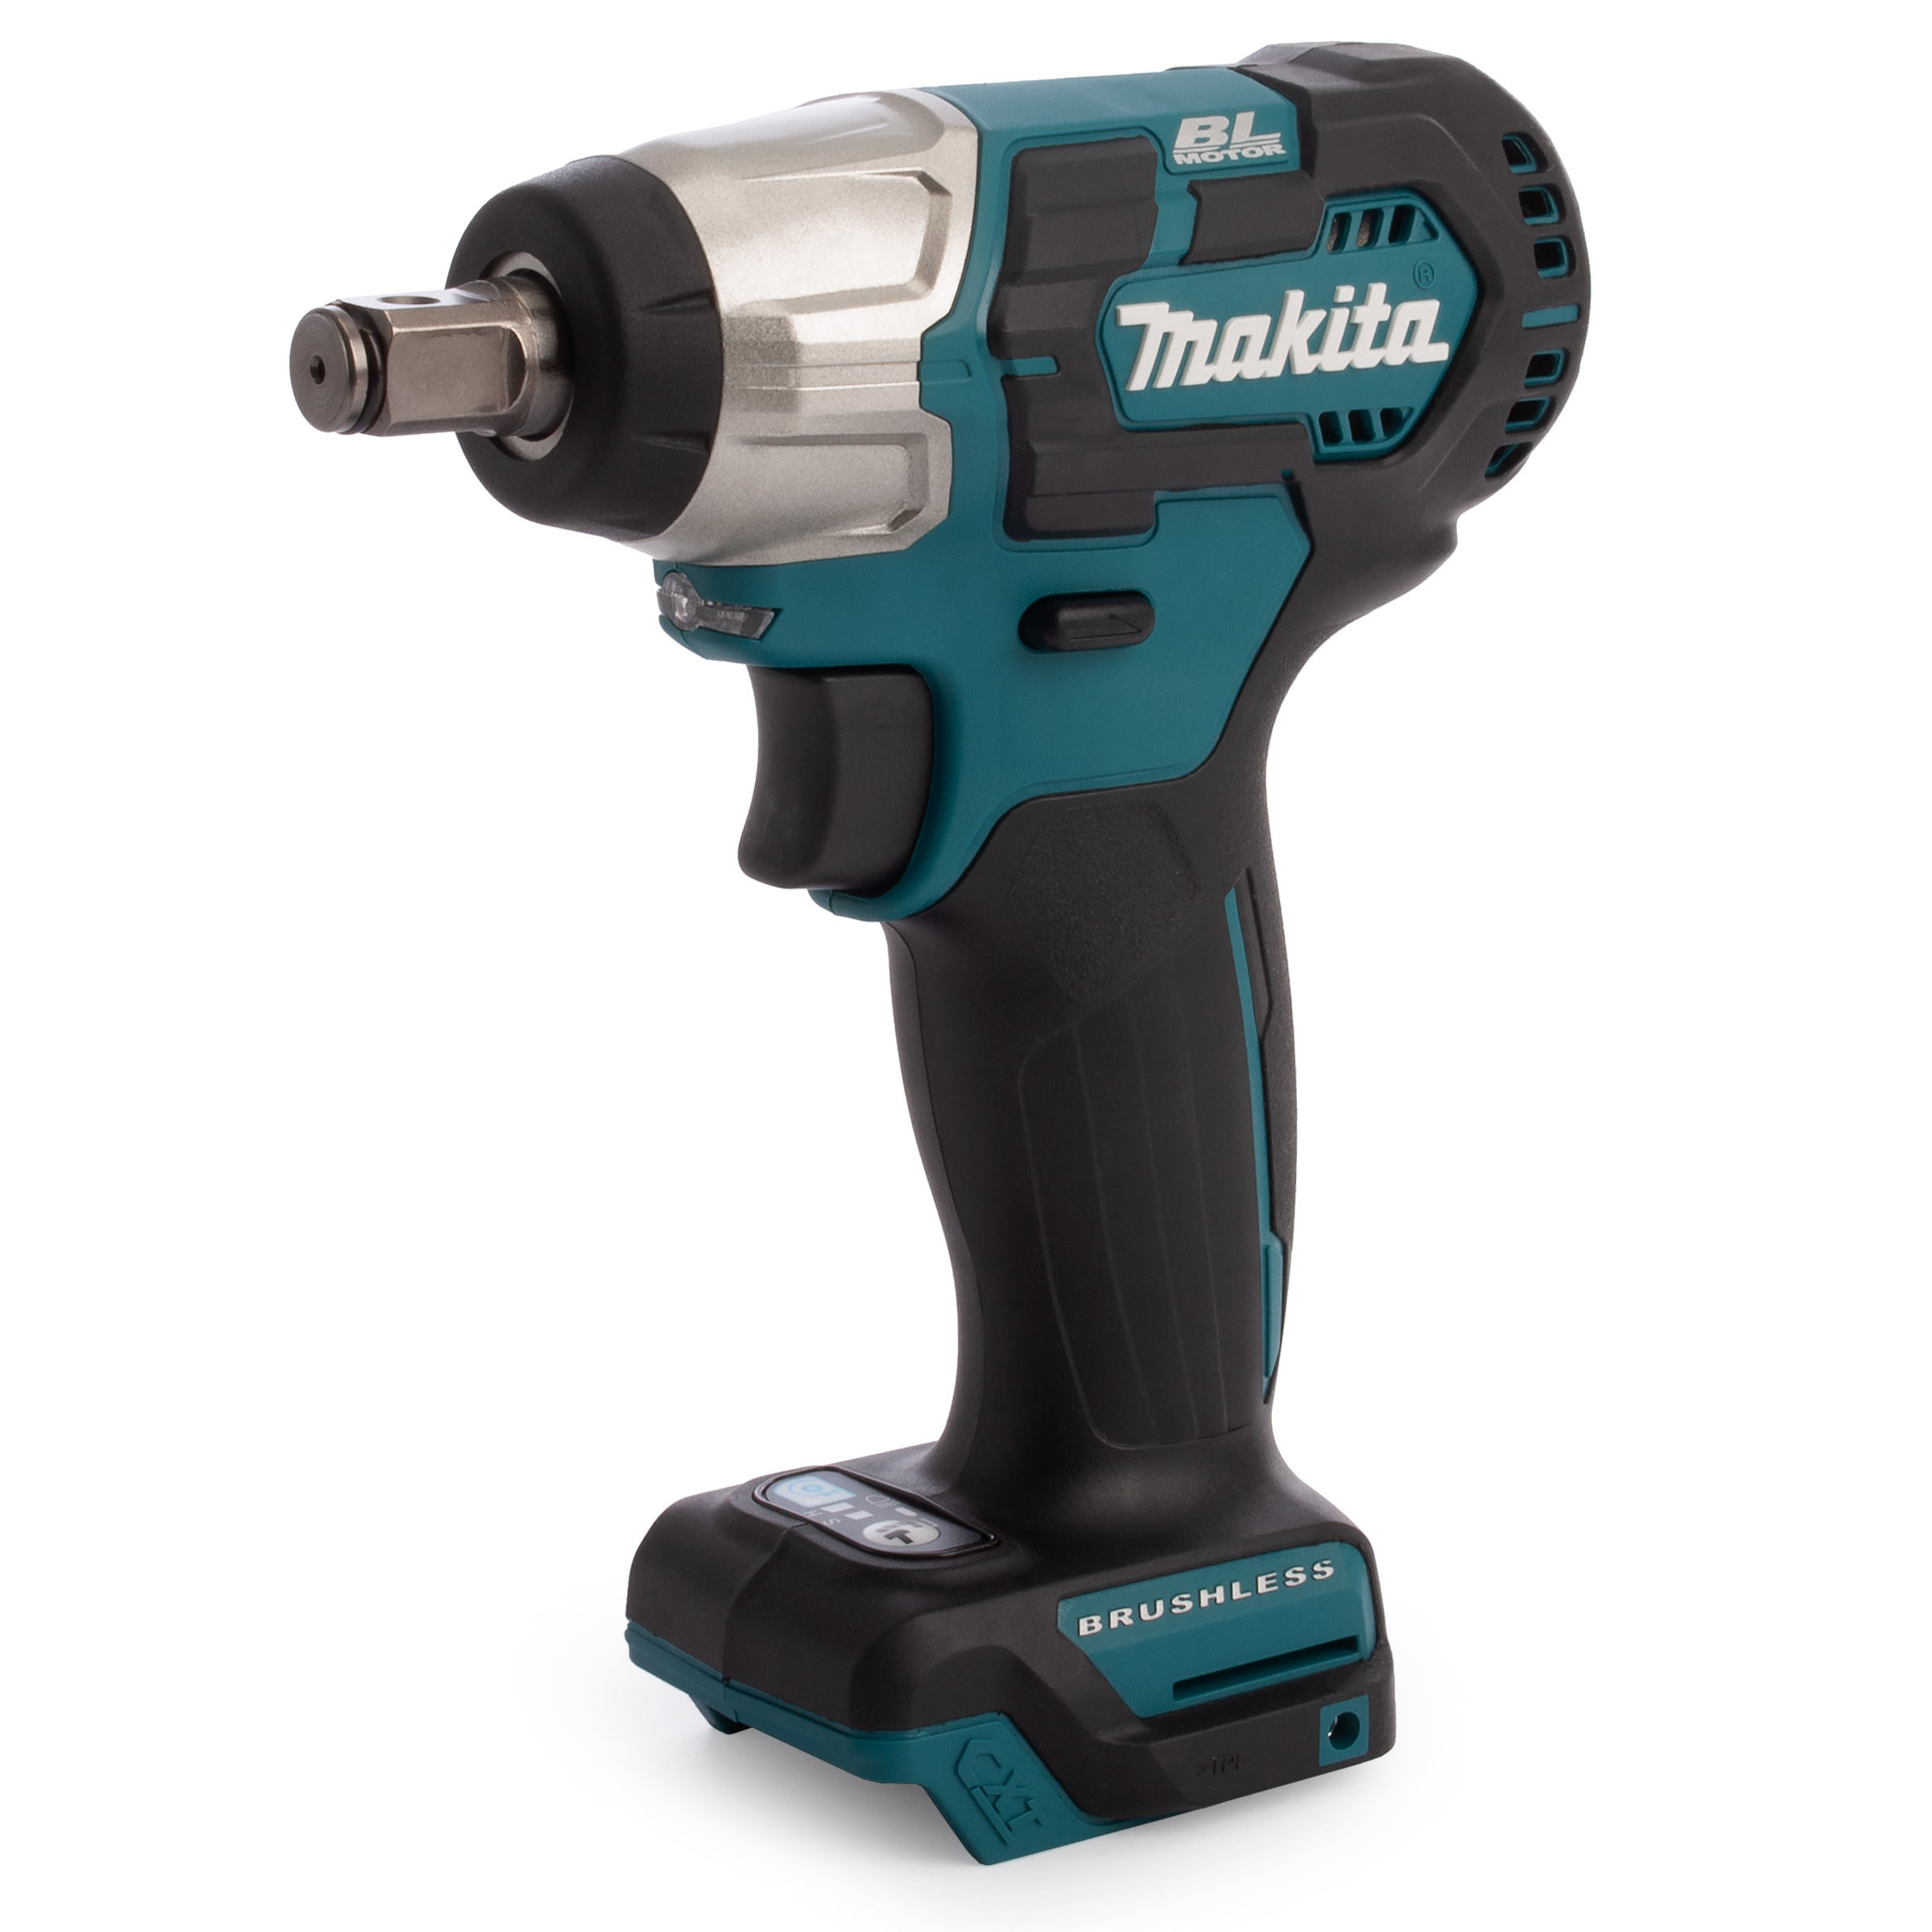 Strange Makita Tw161Dz 12Vmax Cxt Impact Wrench 1 2In Square Drive Body Only Ocoug Best Dining Table And Chair Ideas Images Ocougorg